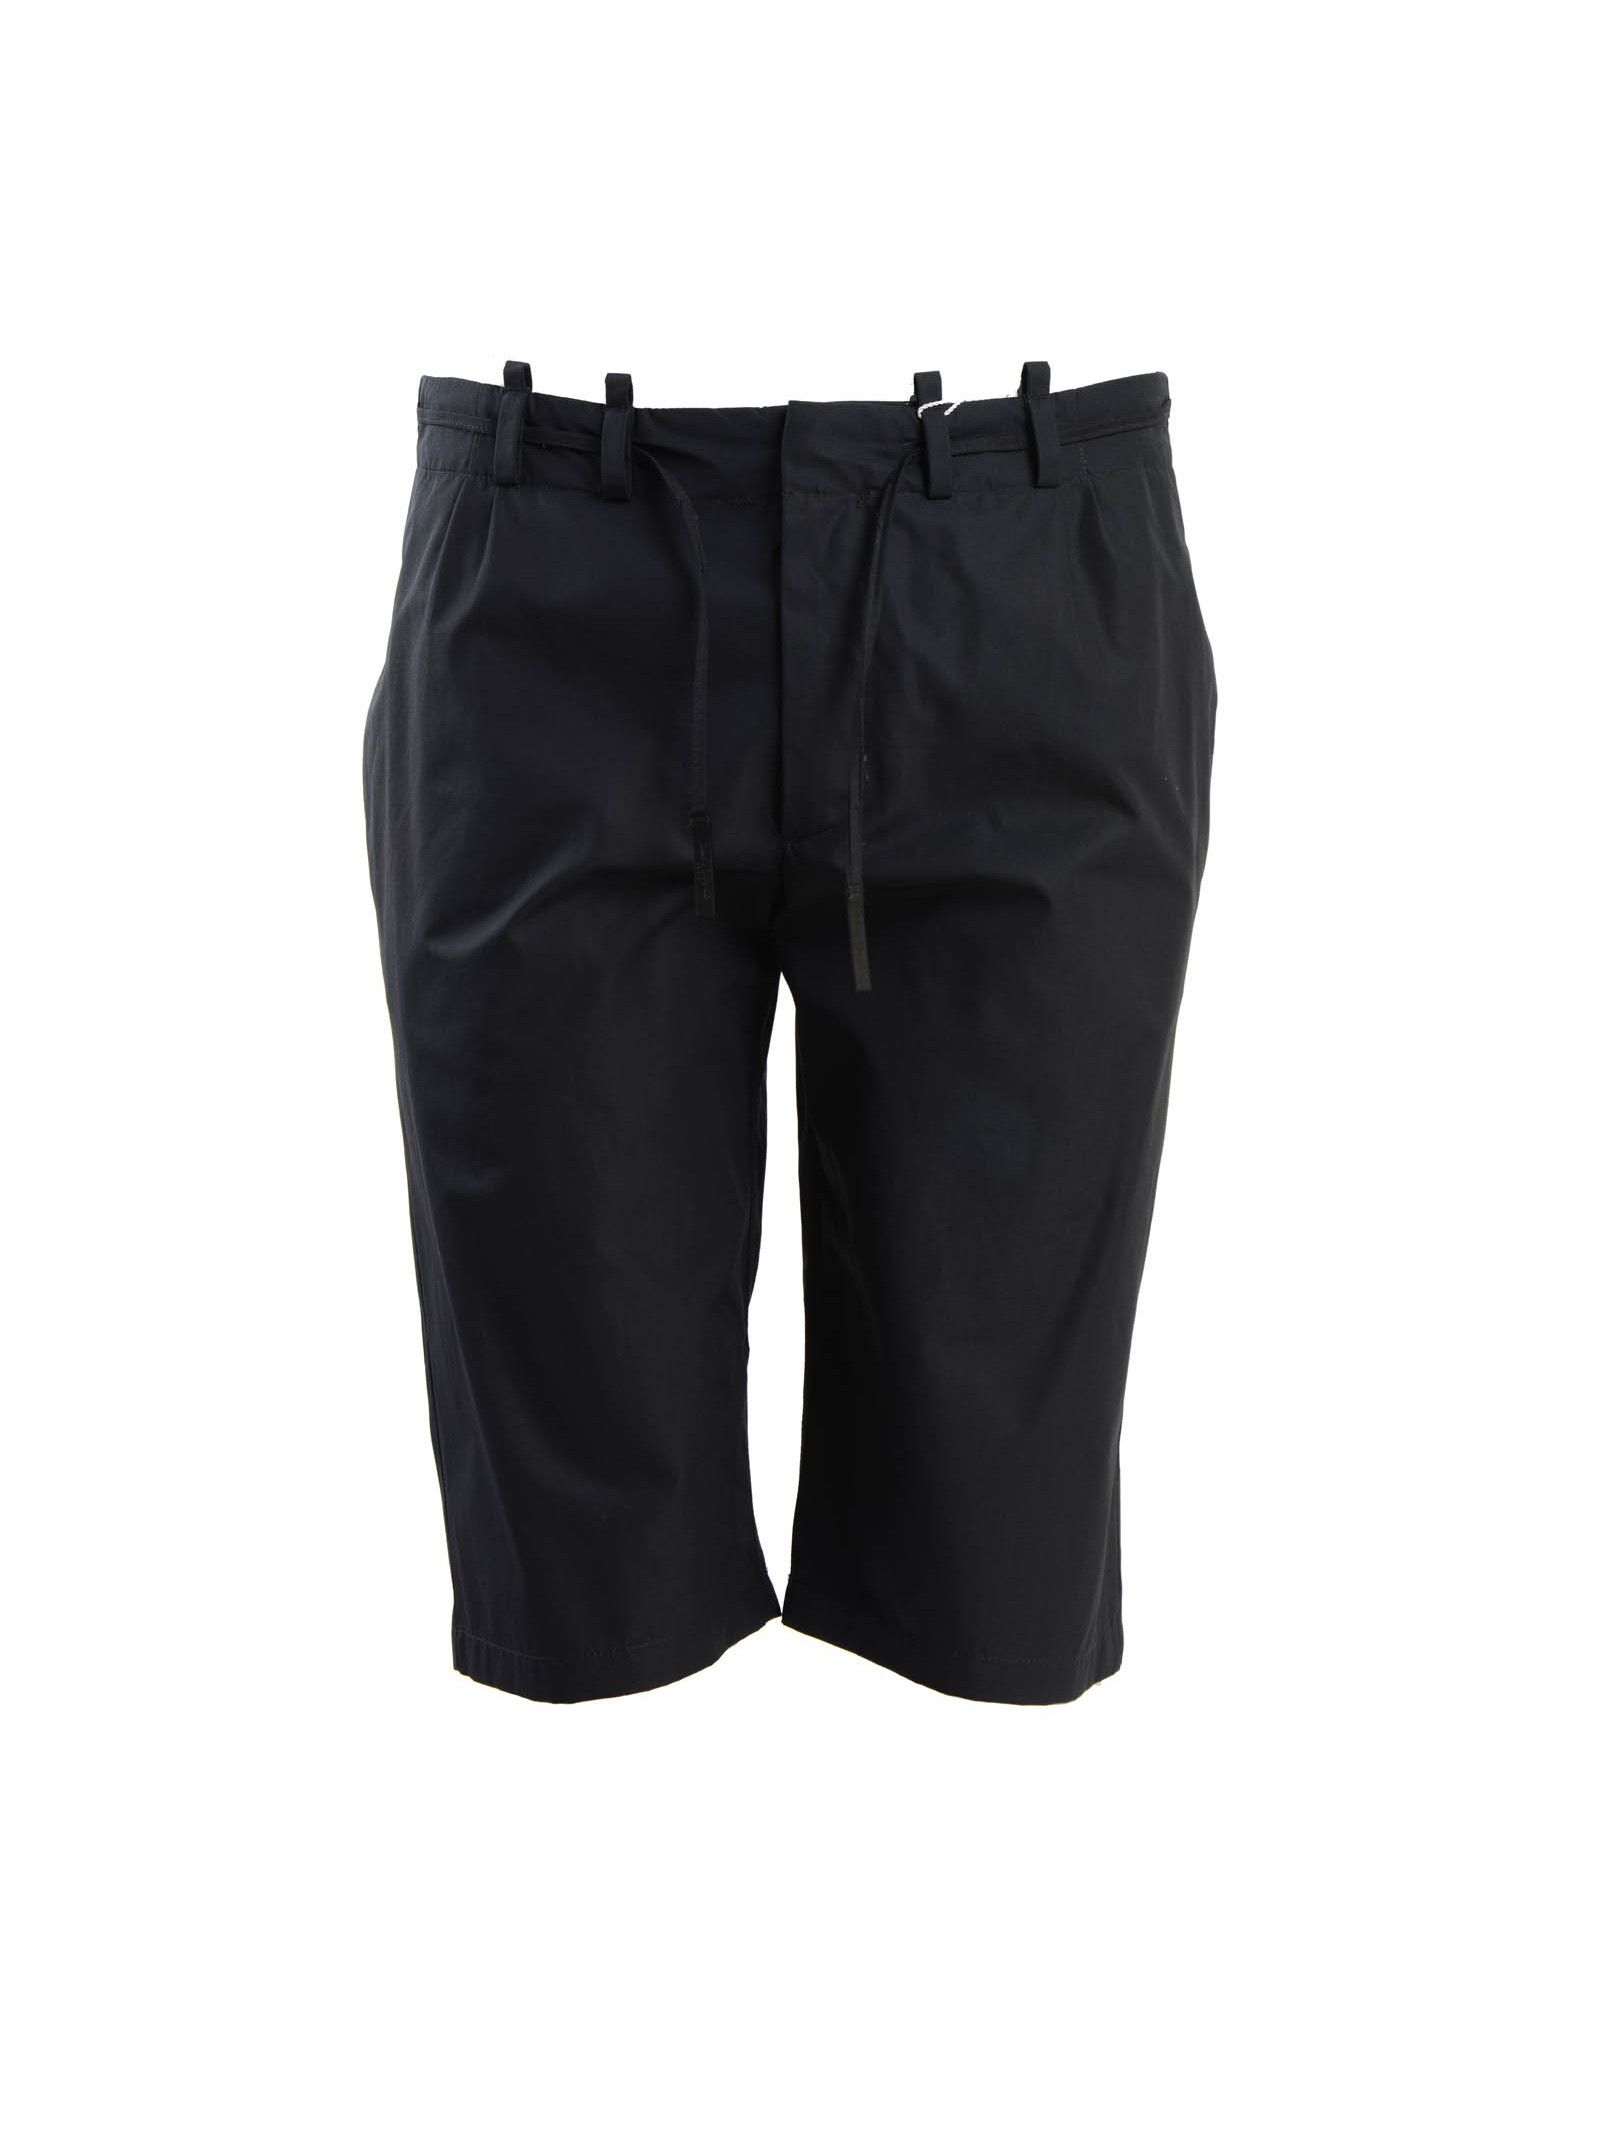 Maison Margiela Short Cotton Pants